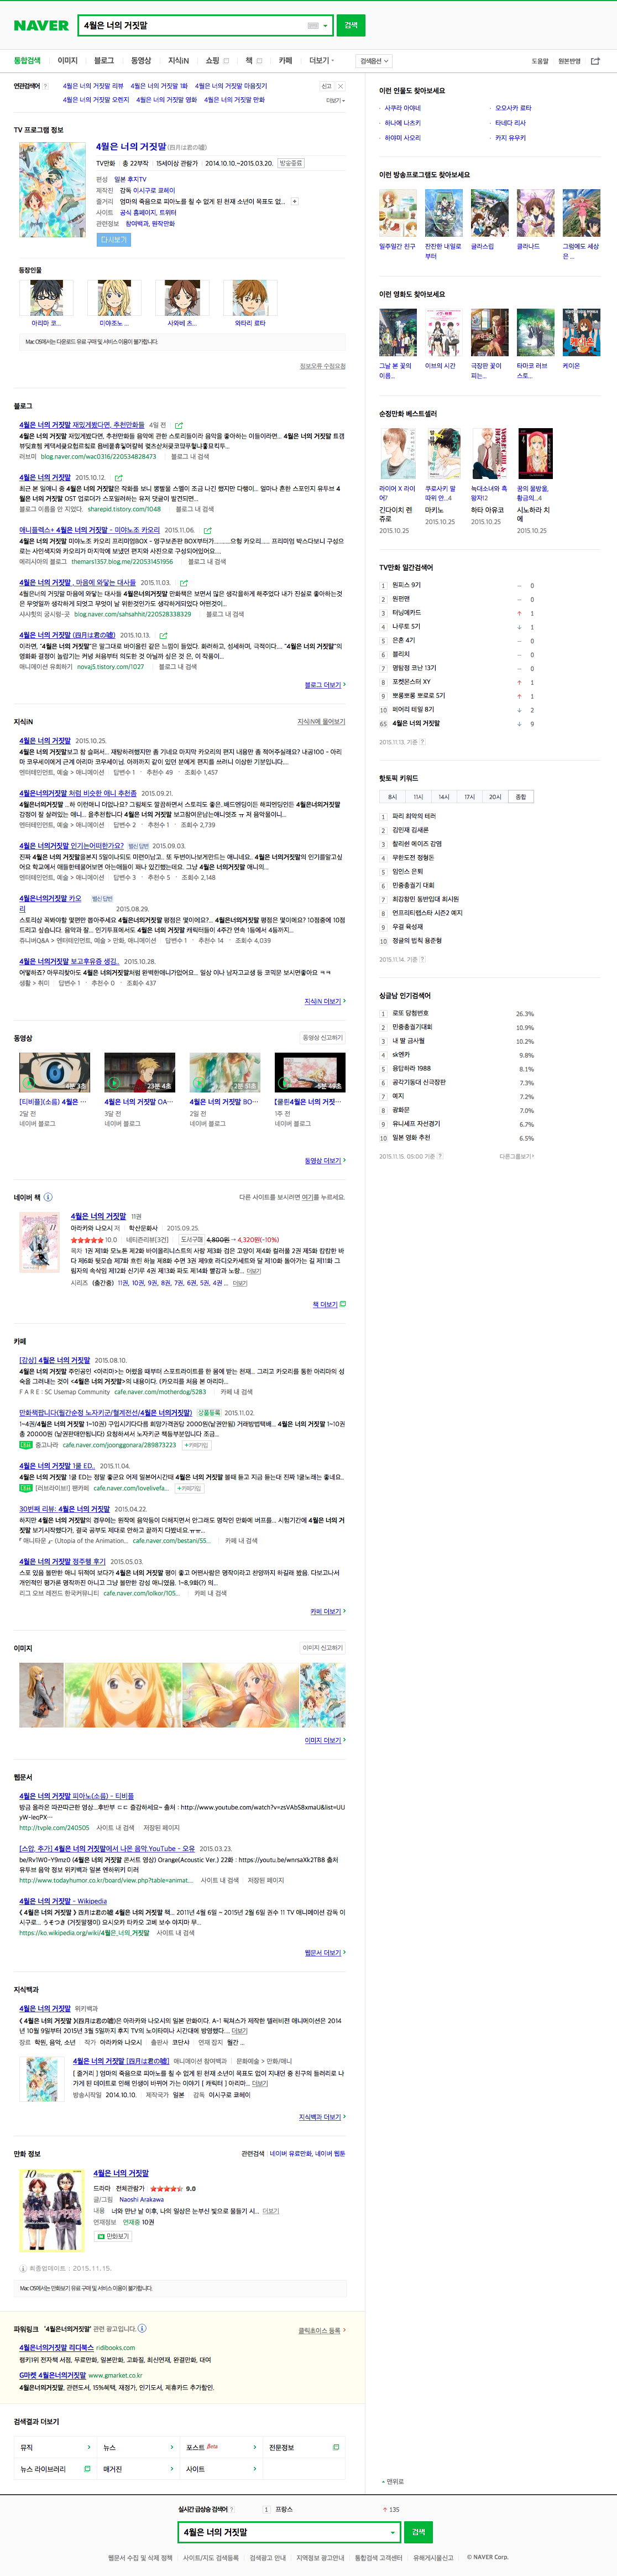 http---search.naver.com-search.naver?where=nexearch&query=4월은+너의+거짓말&sm=top_hty&fbm=1&ie=utf8 (20151115)